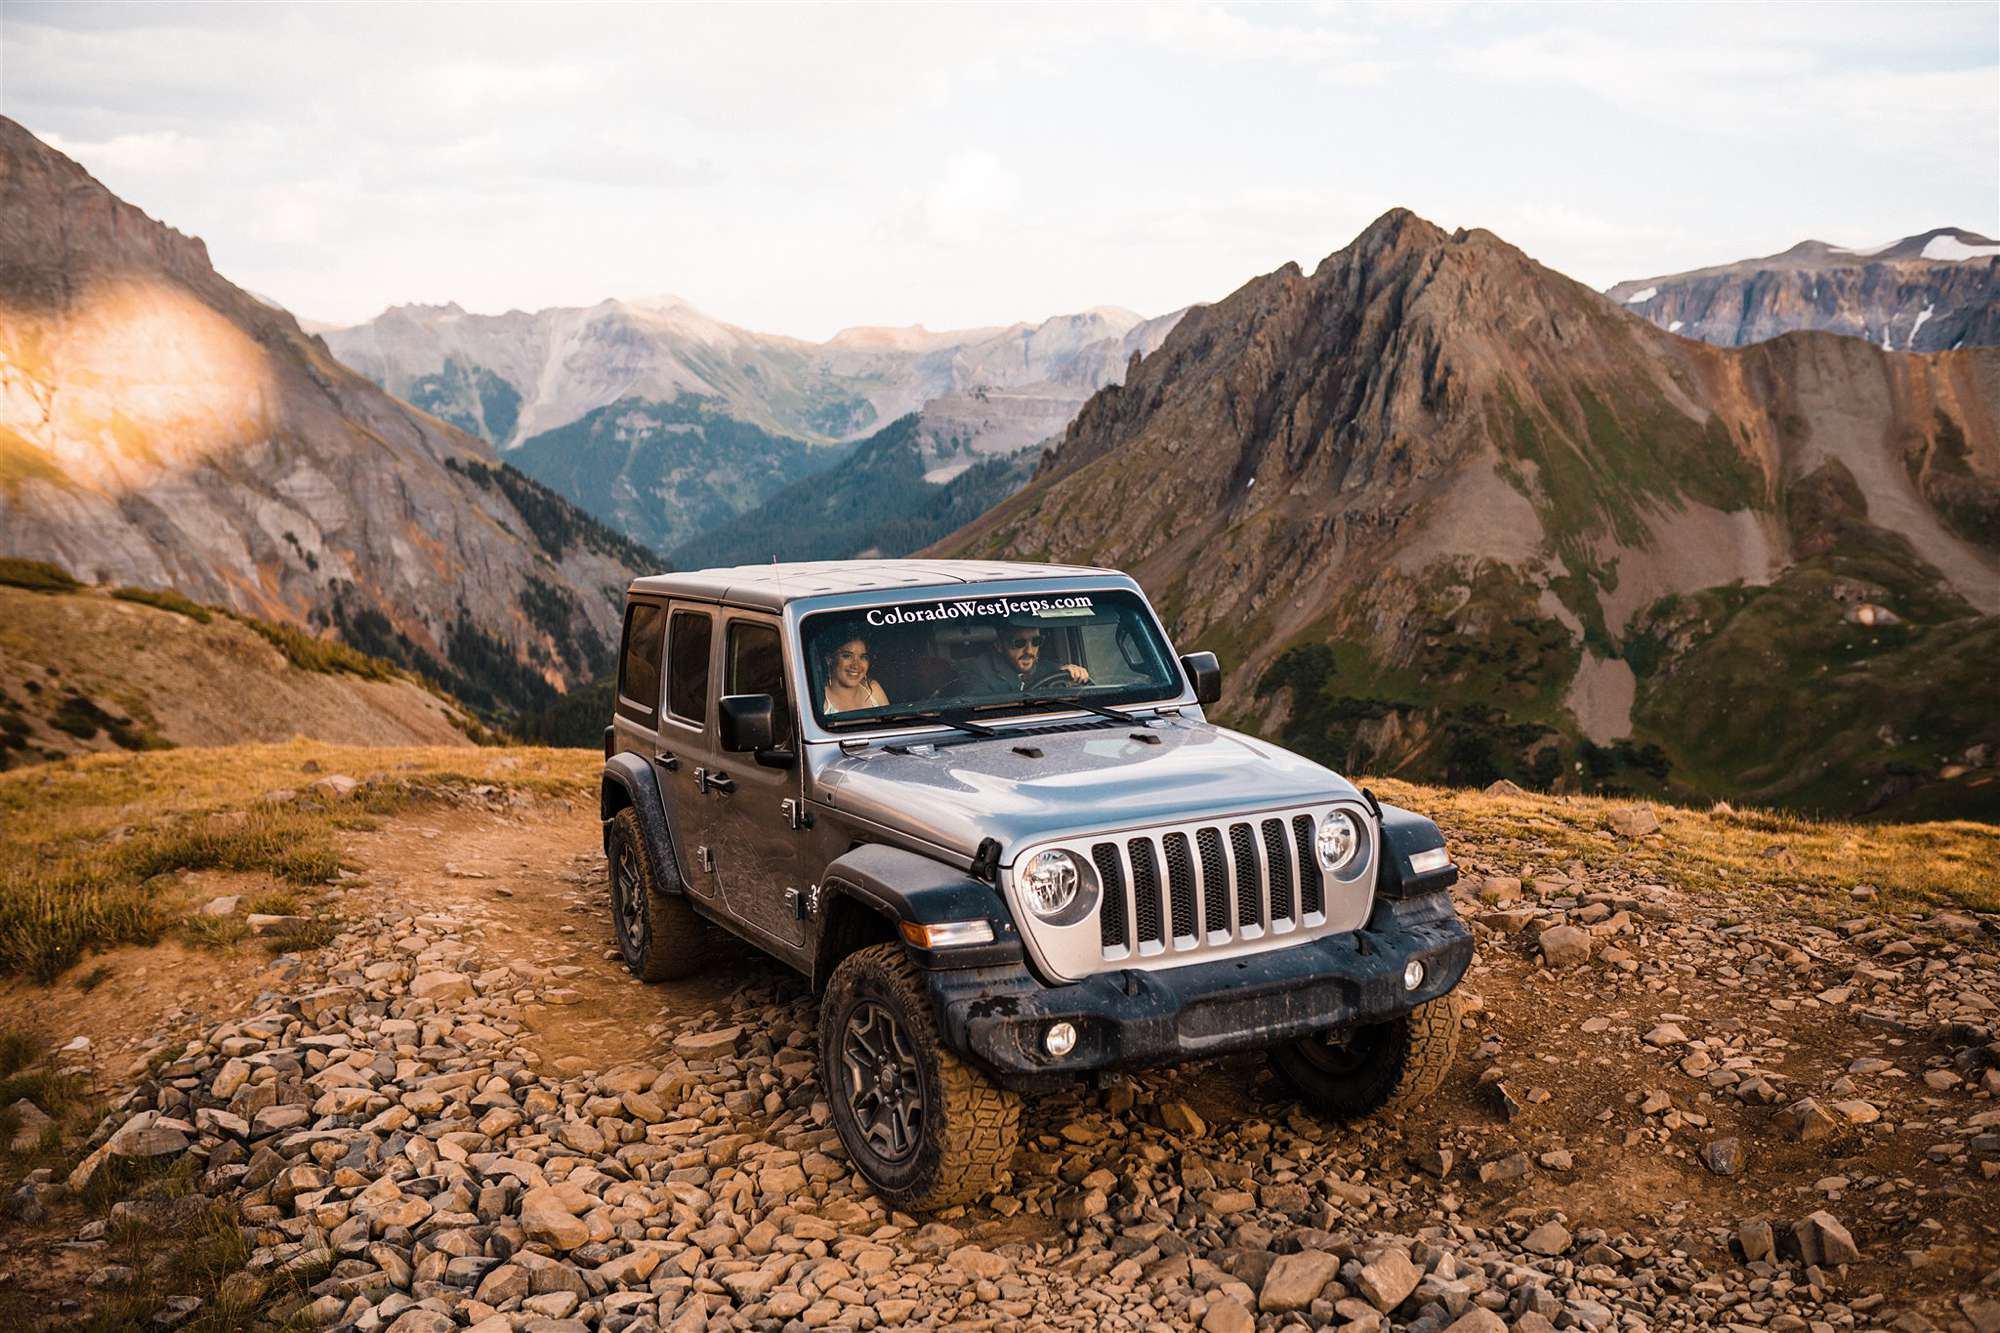 Telluride Elopement couple driving a jeep in the mountains